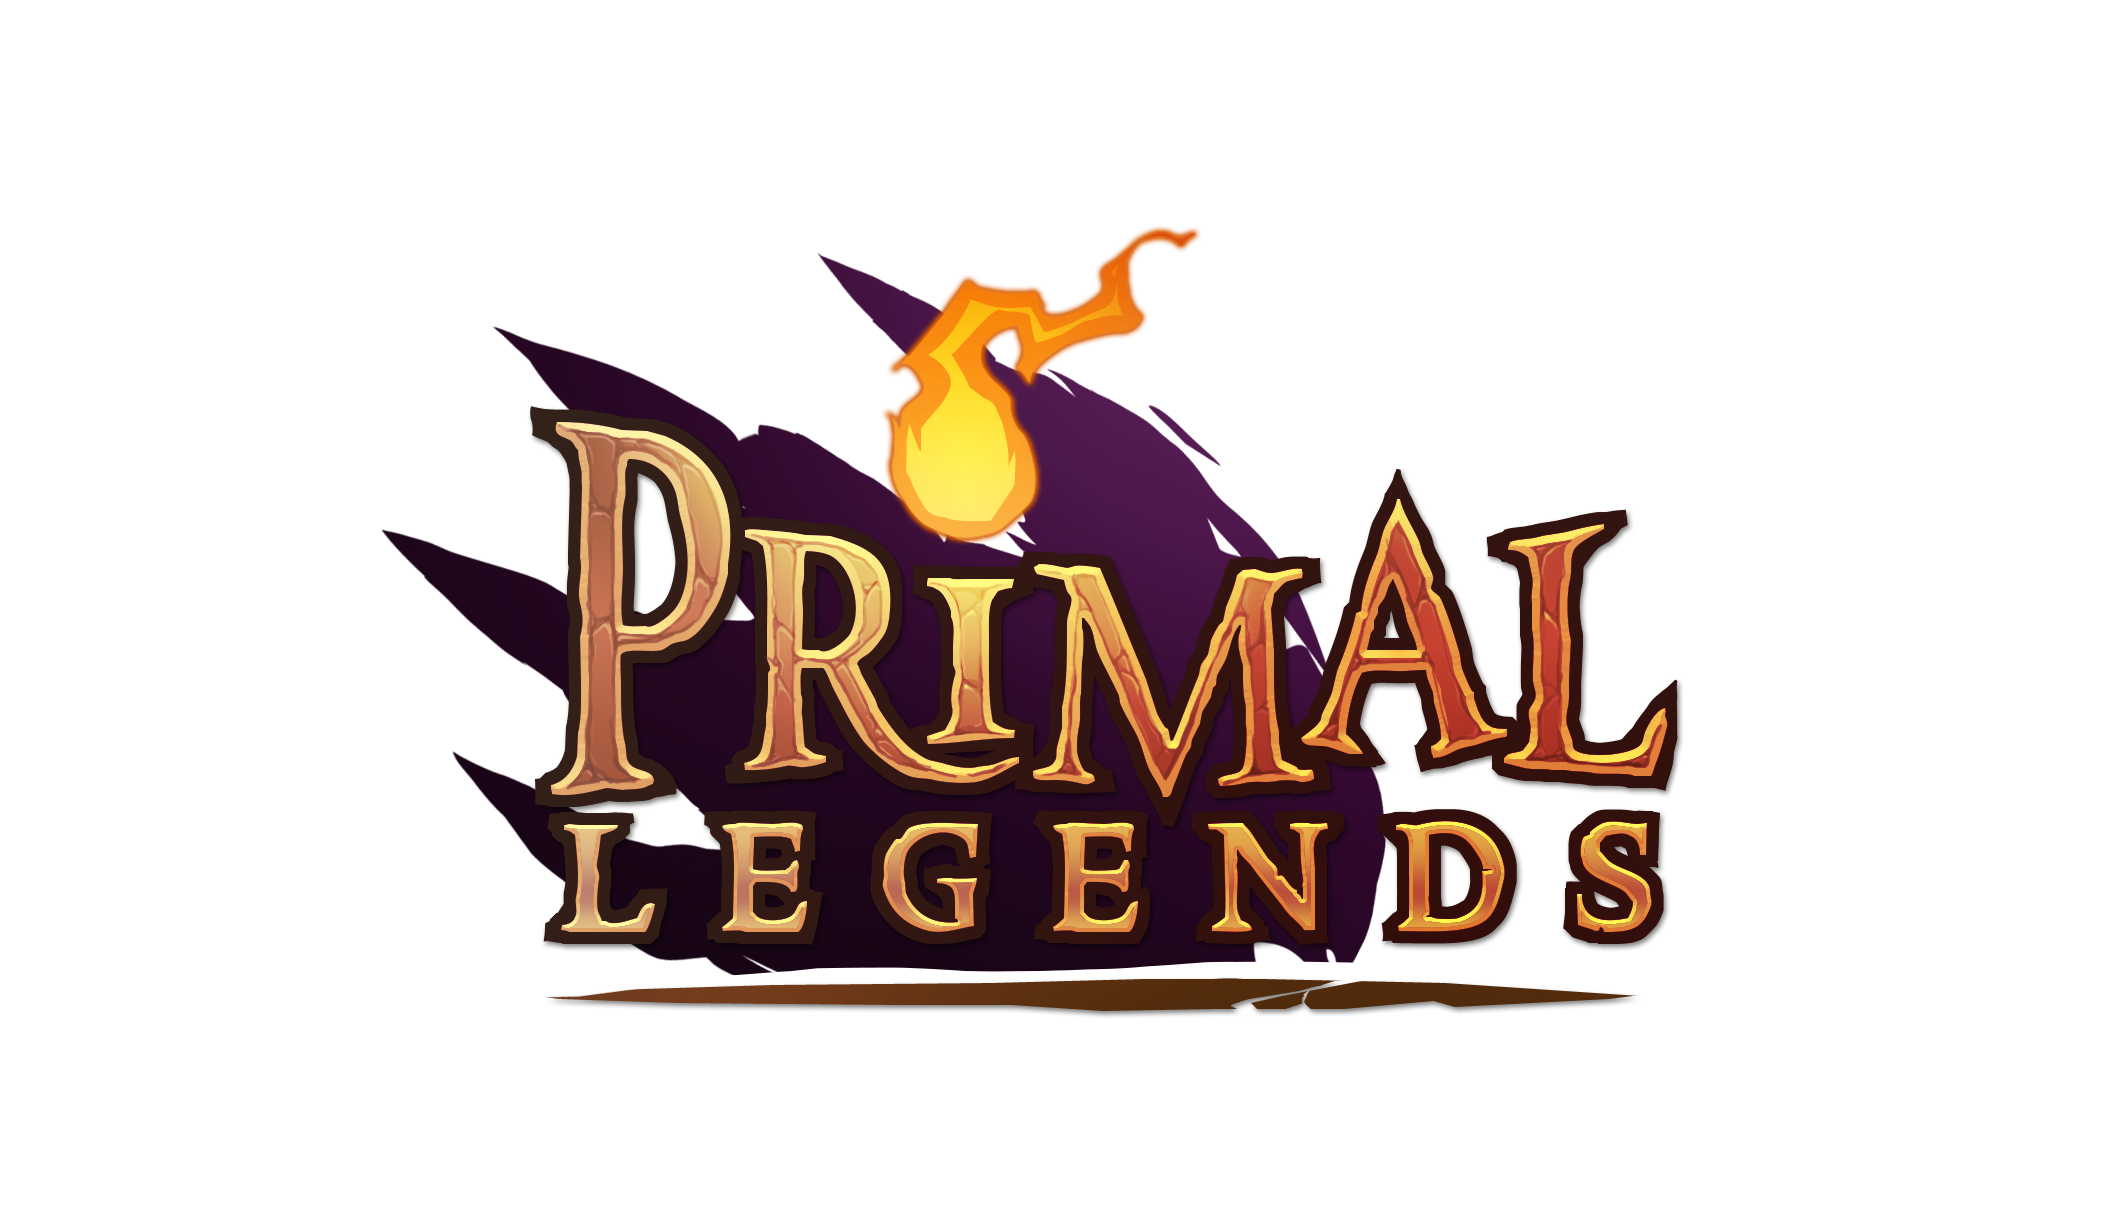 Primal Legends, a unique blend of Competitive Match-3, RTS and TCG, releases today!